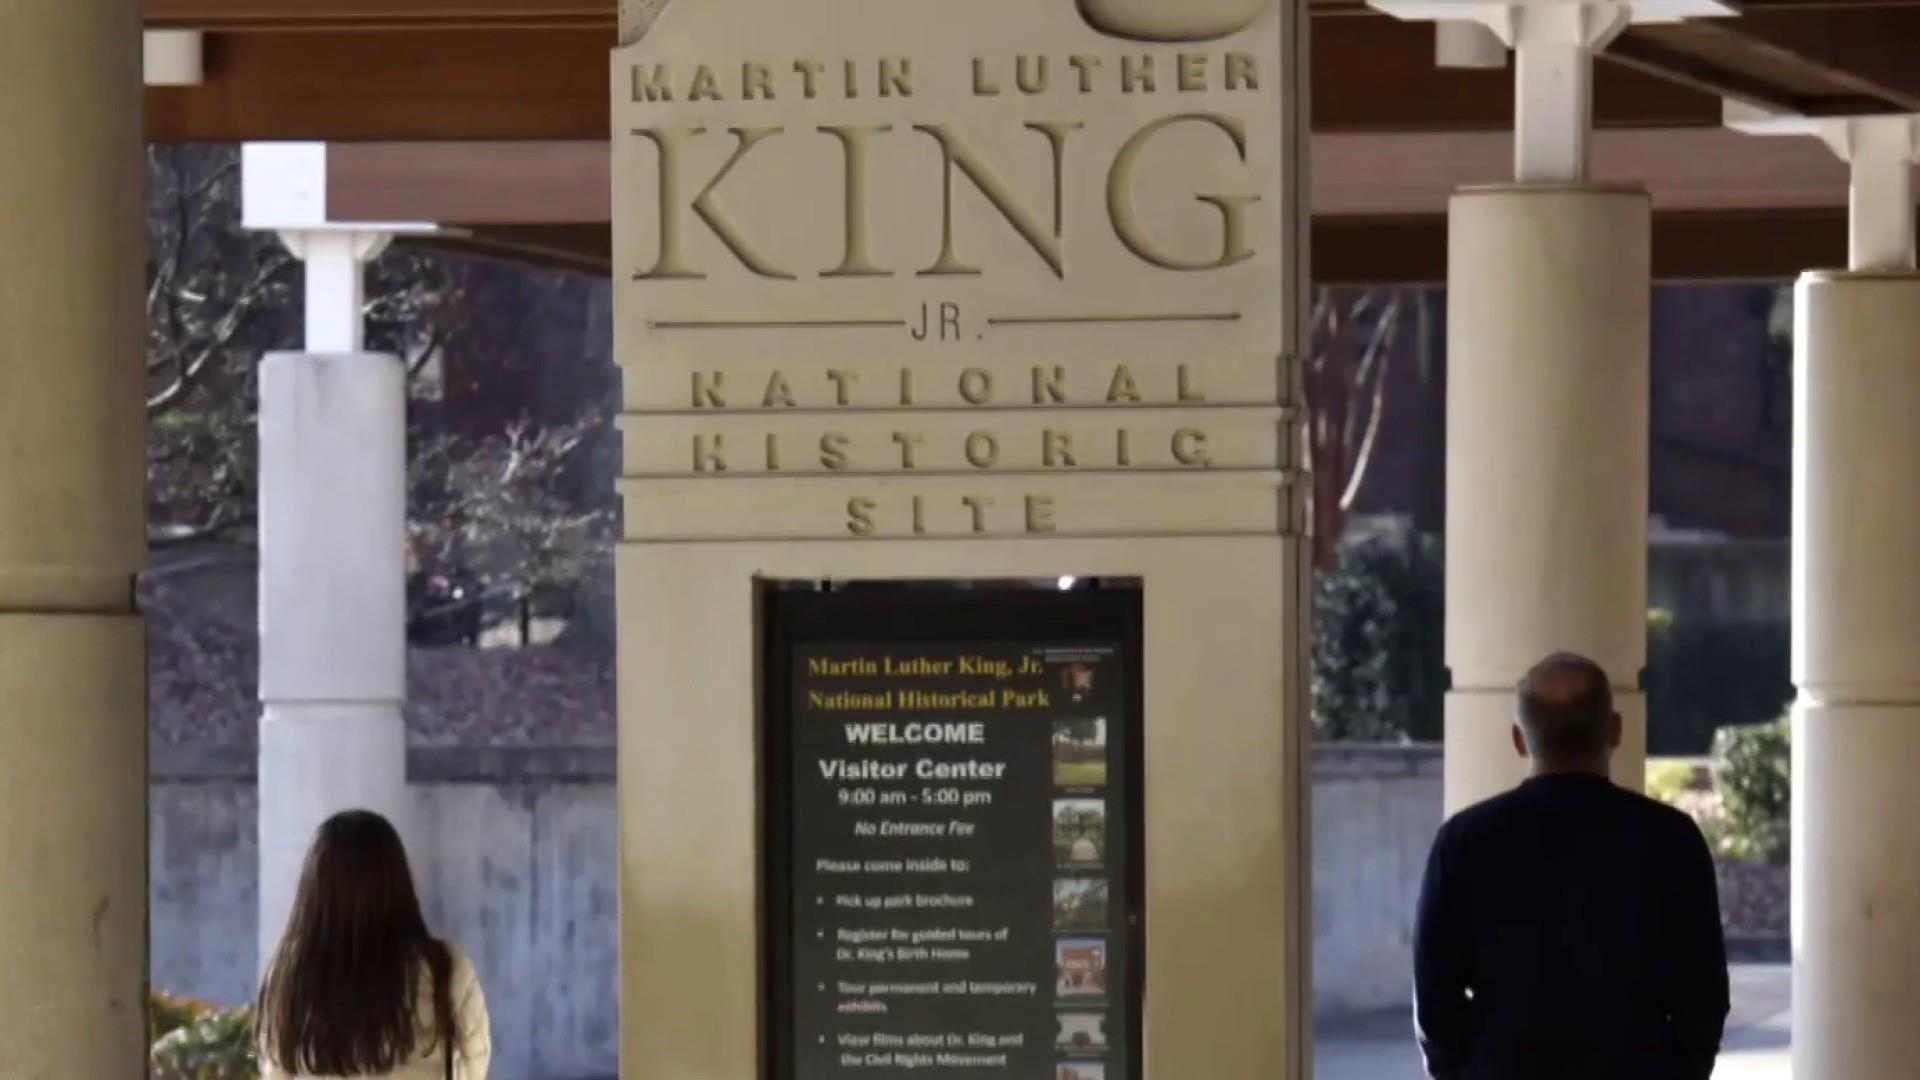 #GoodNewsRUHLES: Delta paying for MLK Nat'l Park to be open on MLK weekend